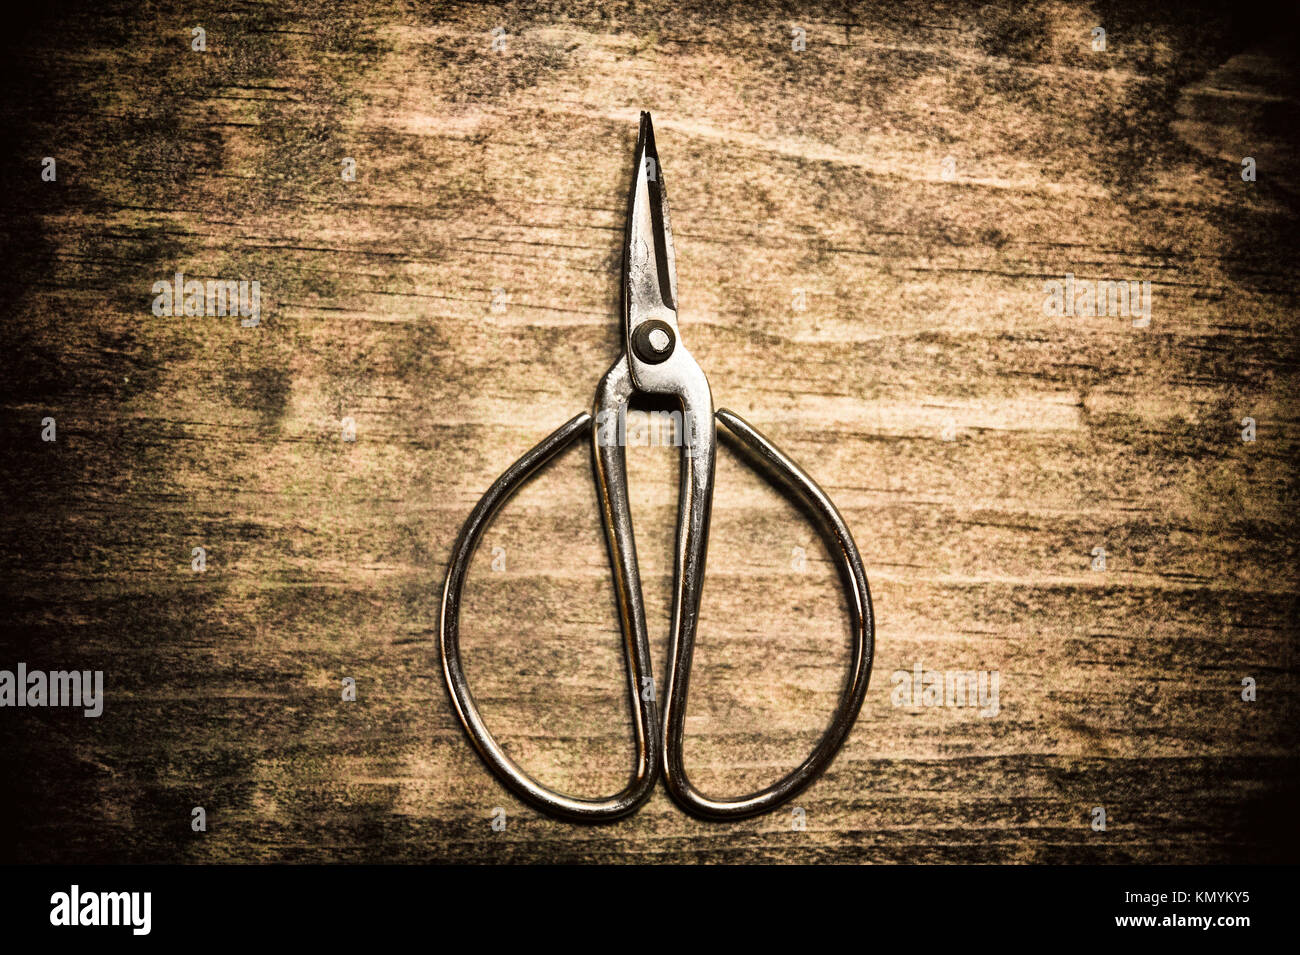 Old pair of scissors on wooden background - Stock Image